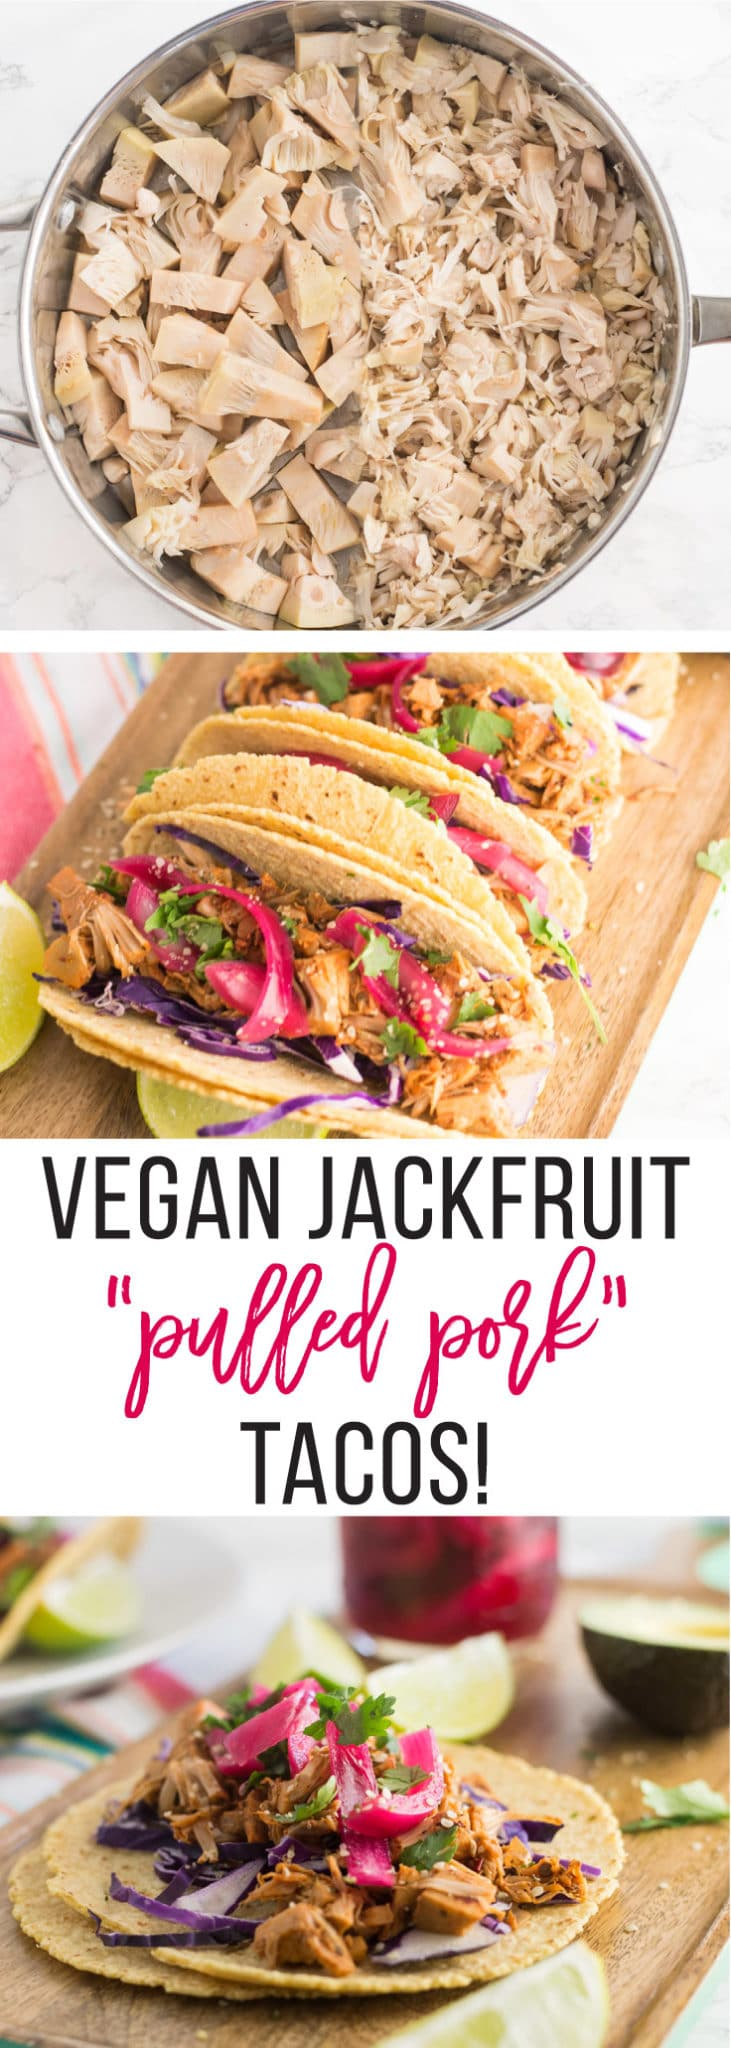 Vegan Jackfruit Pulled Pork Tacos -- These tacos are  PERFECT for a vegan dinner recipe. Get ahold of some canned jackfruit for a plant based